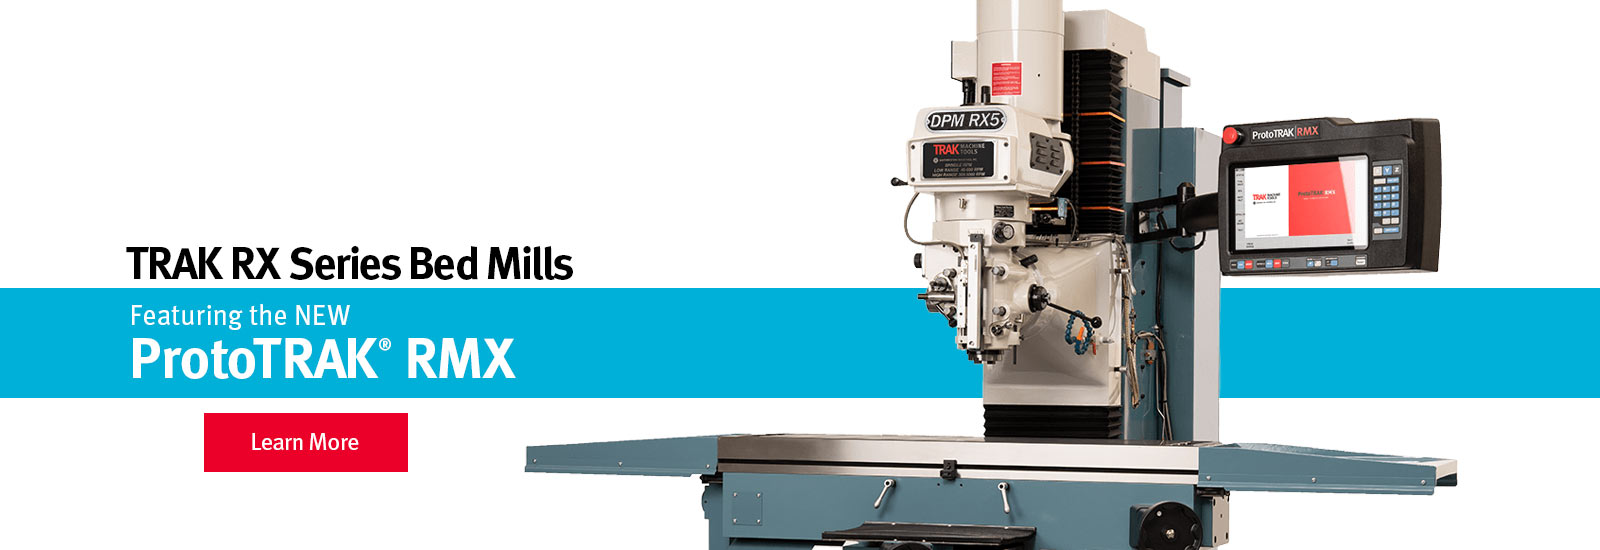 TRAK DPMRX Bed Mills featuring the ProtoTRAK RMX CNC